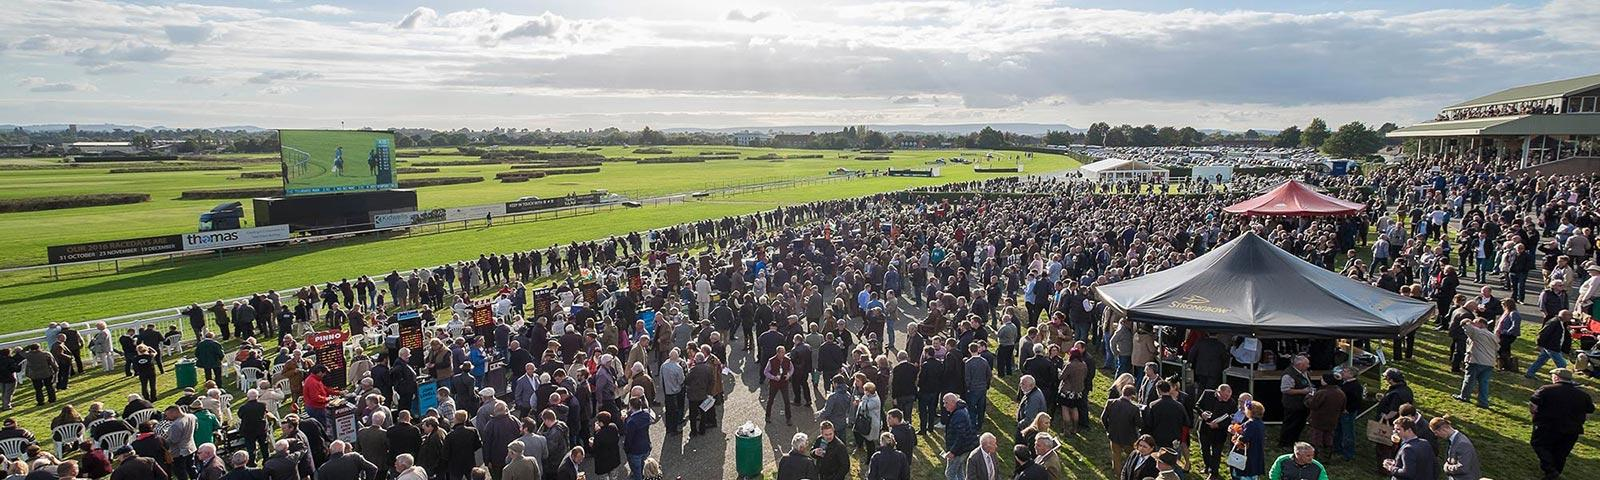 Crowds watching racing at Hereford Racecourse.